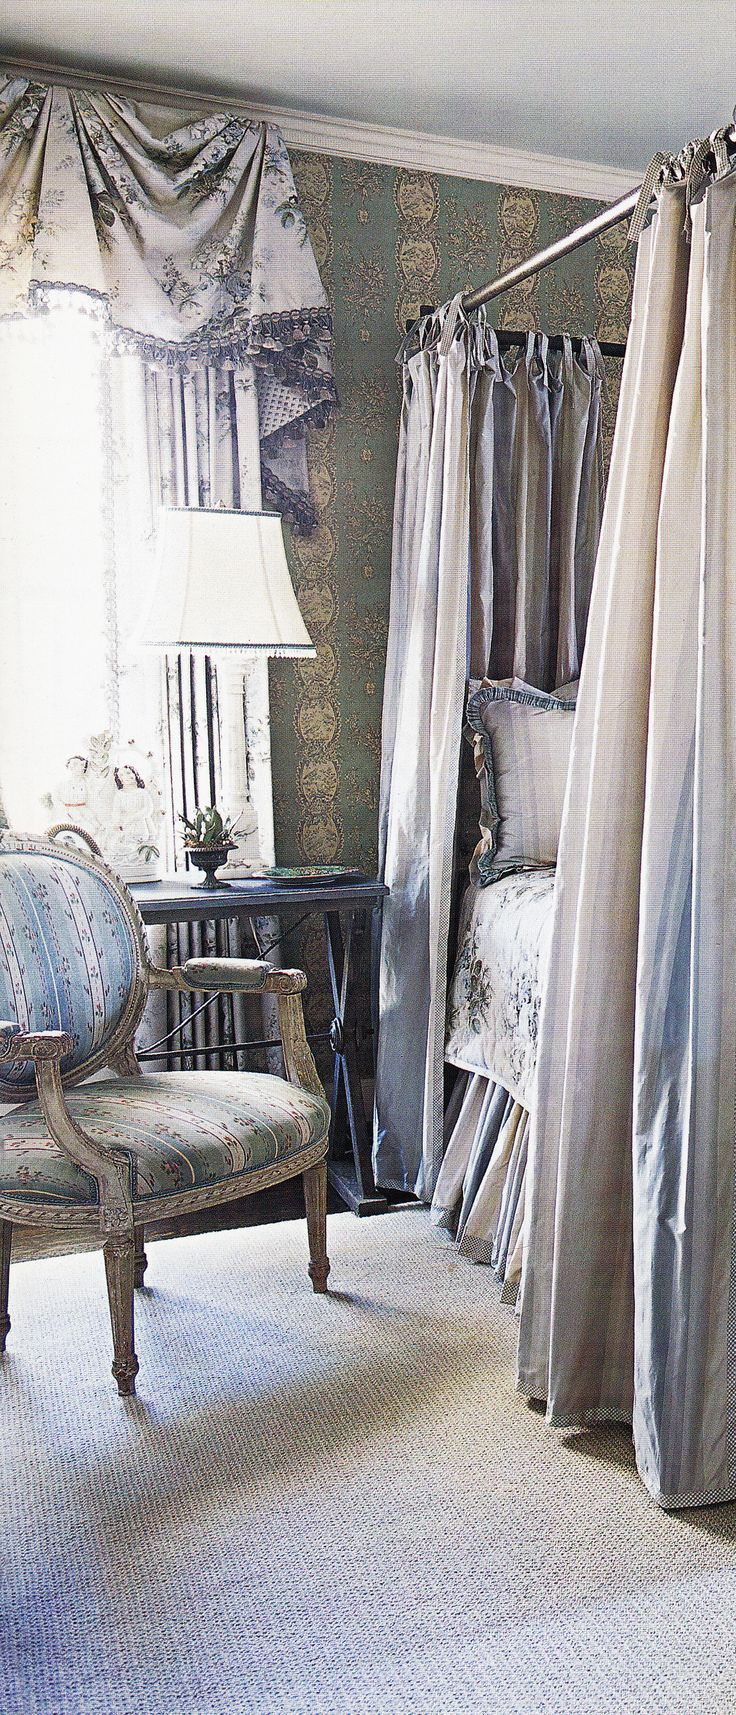 Melissa & Scot Ison's Bedroom by Charles Faudree, DECOR Spring Summer 2006